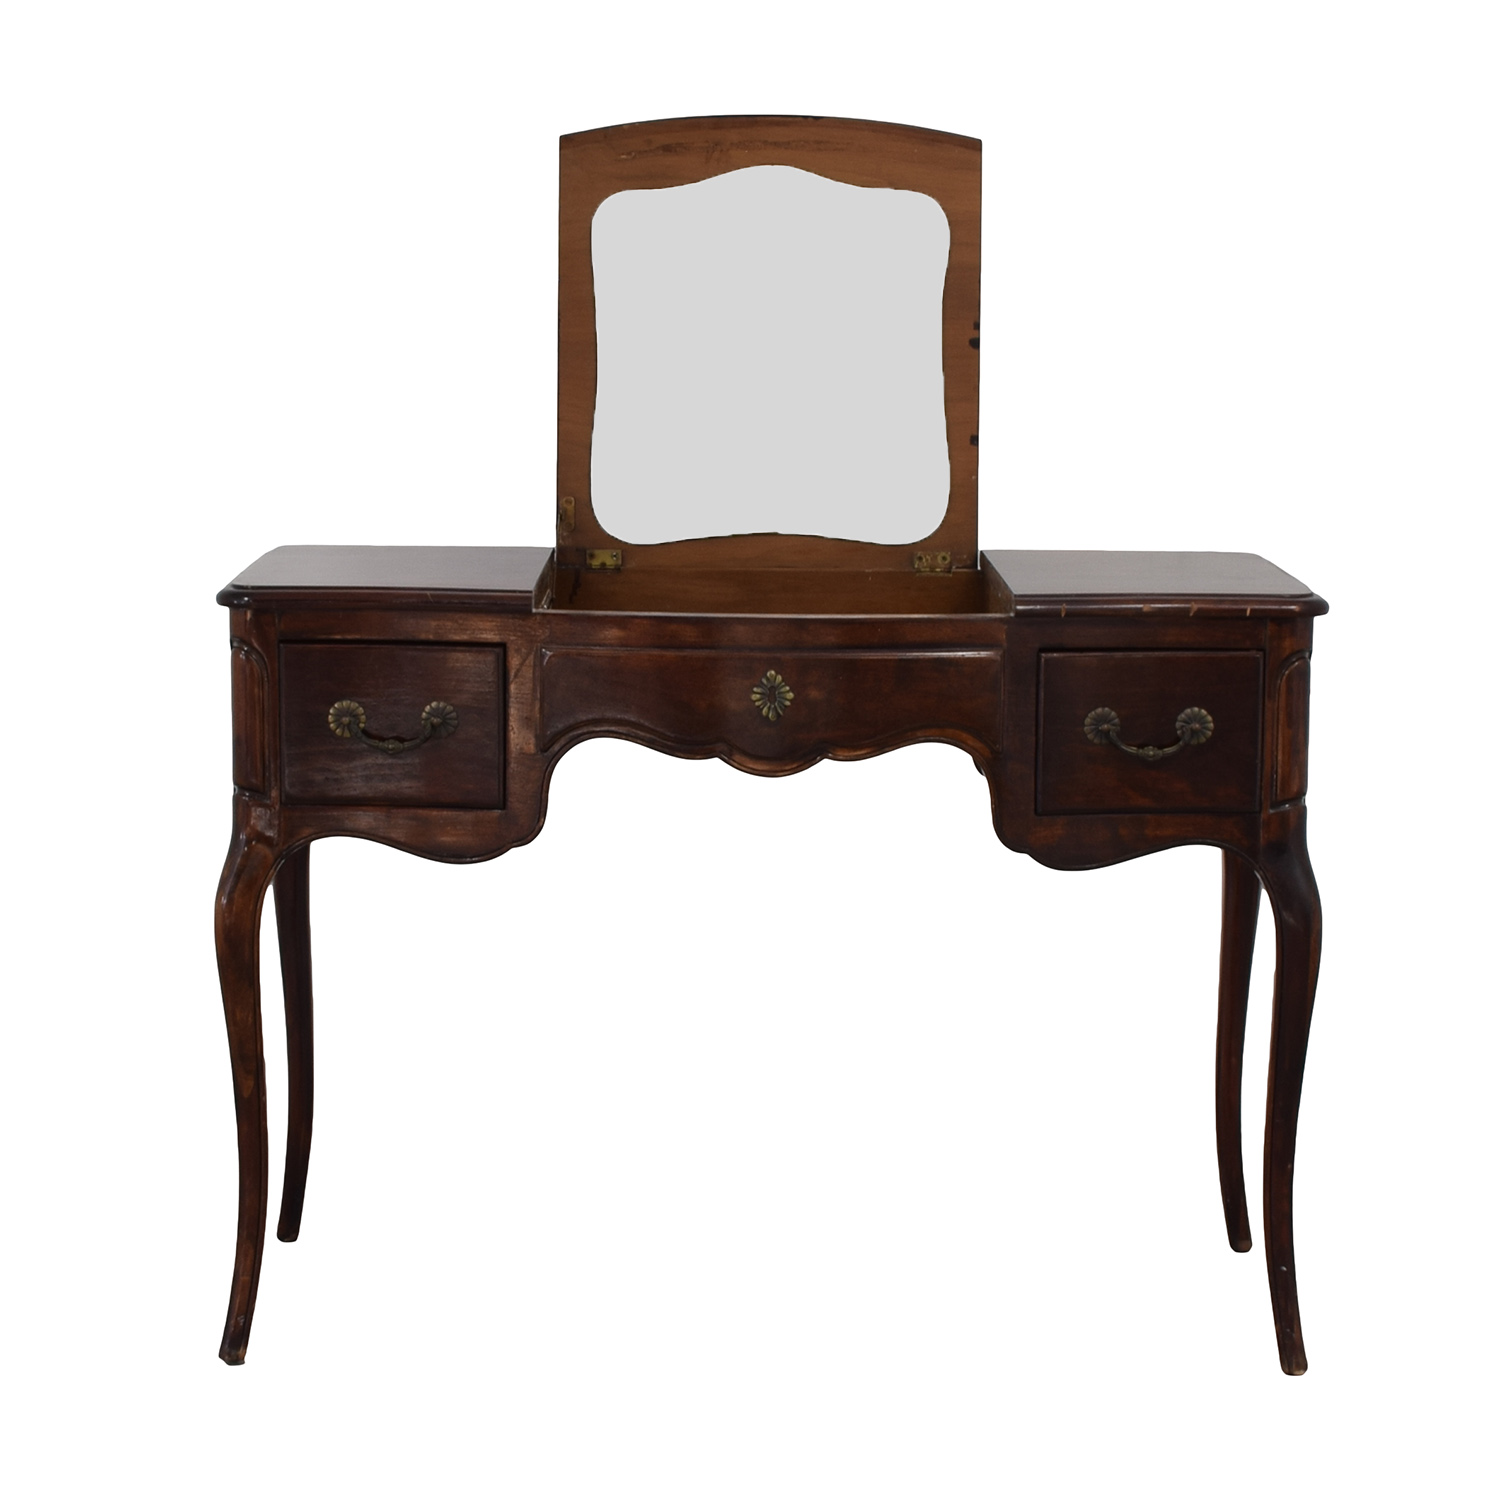 Drexel Drexel Three-Drawer Vanity Table with Pull Up Mirror for sale